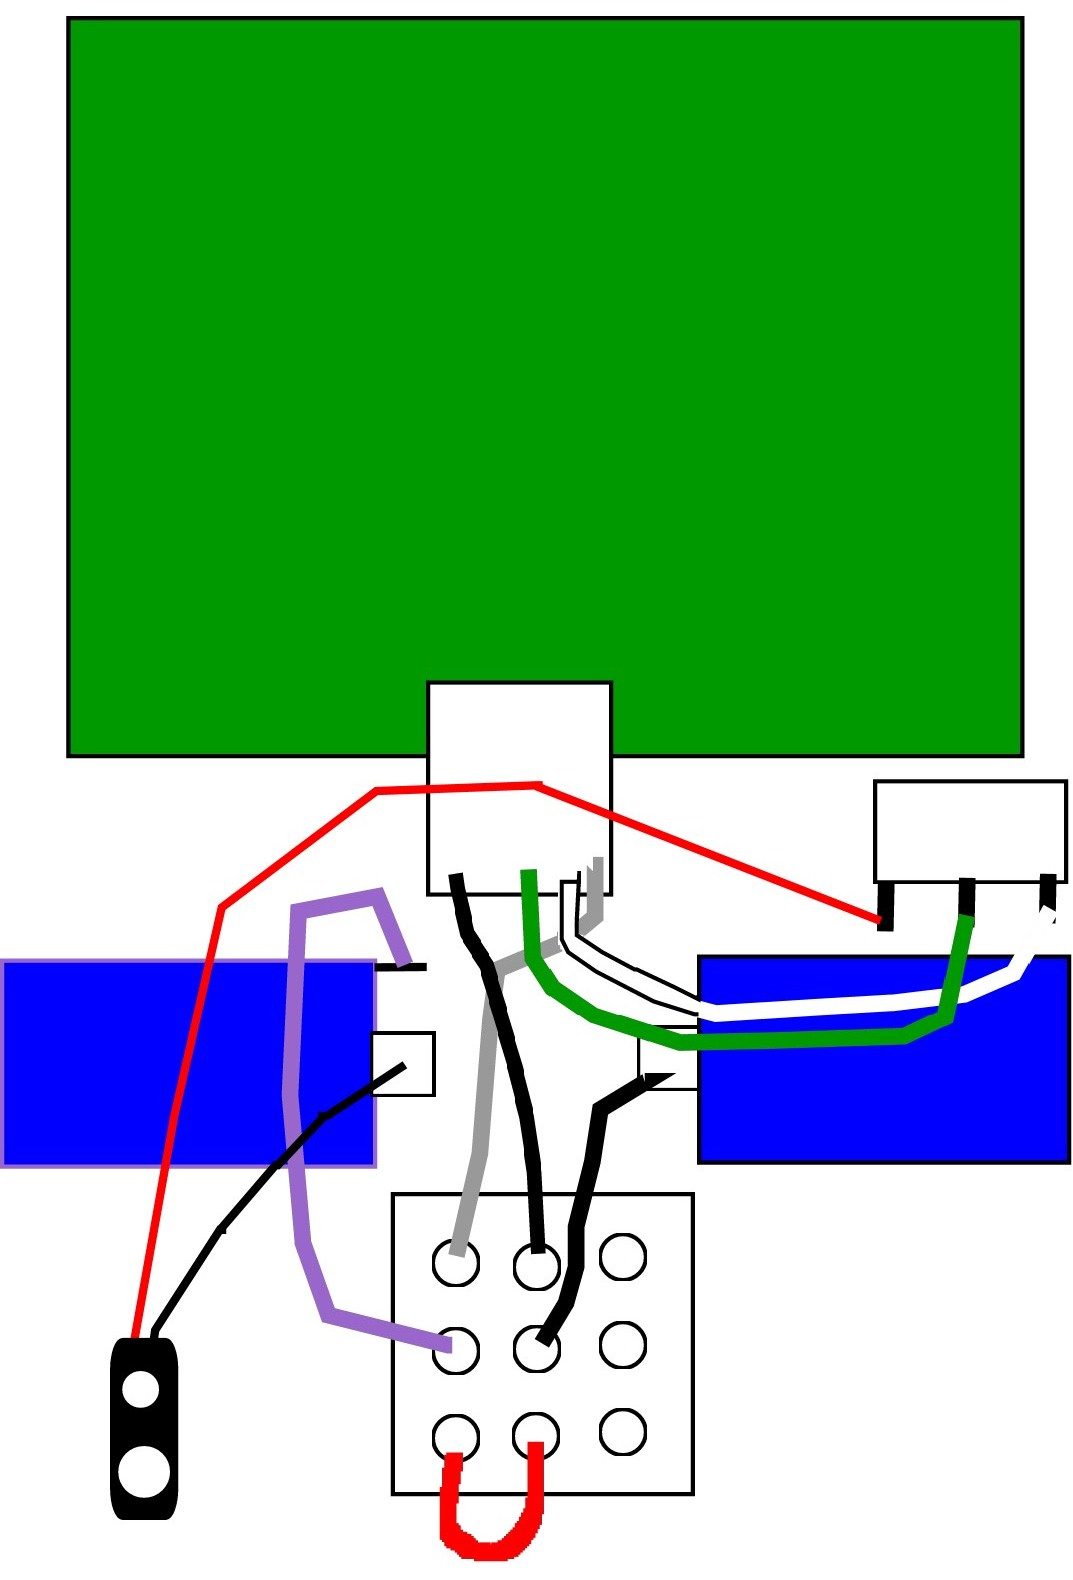 3pdt Wiring Diagram Moment Fx Dod Yjm 308 Preamp True Bypass Mod Its Hard To Make Out The In Photo And Is Pretty Crude But Between Two Of Them You Should Be Able Discern Where Wires